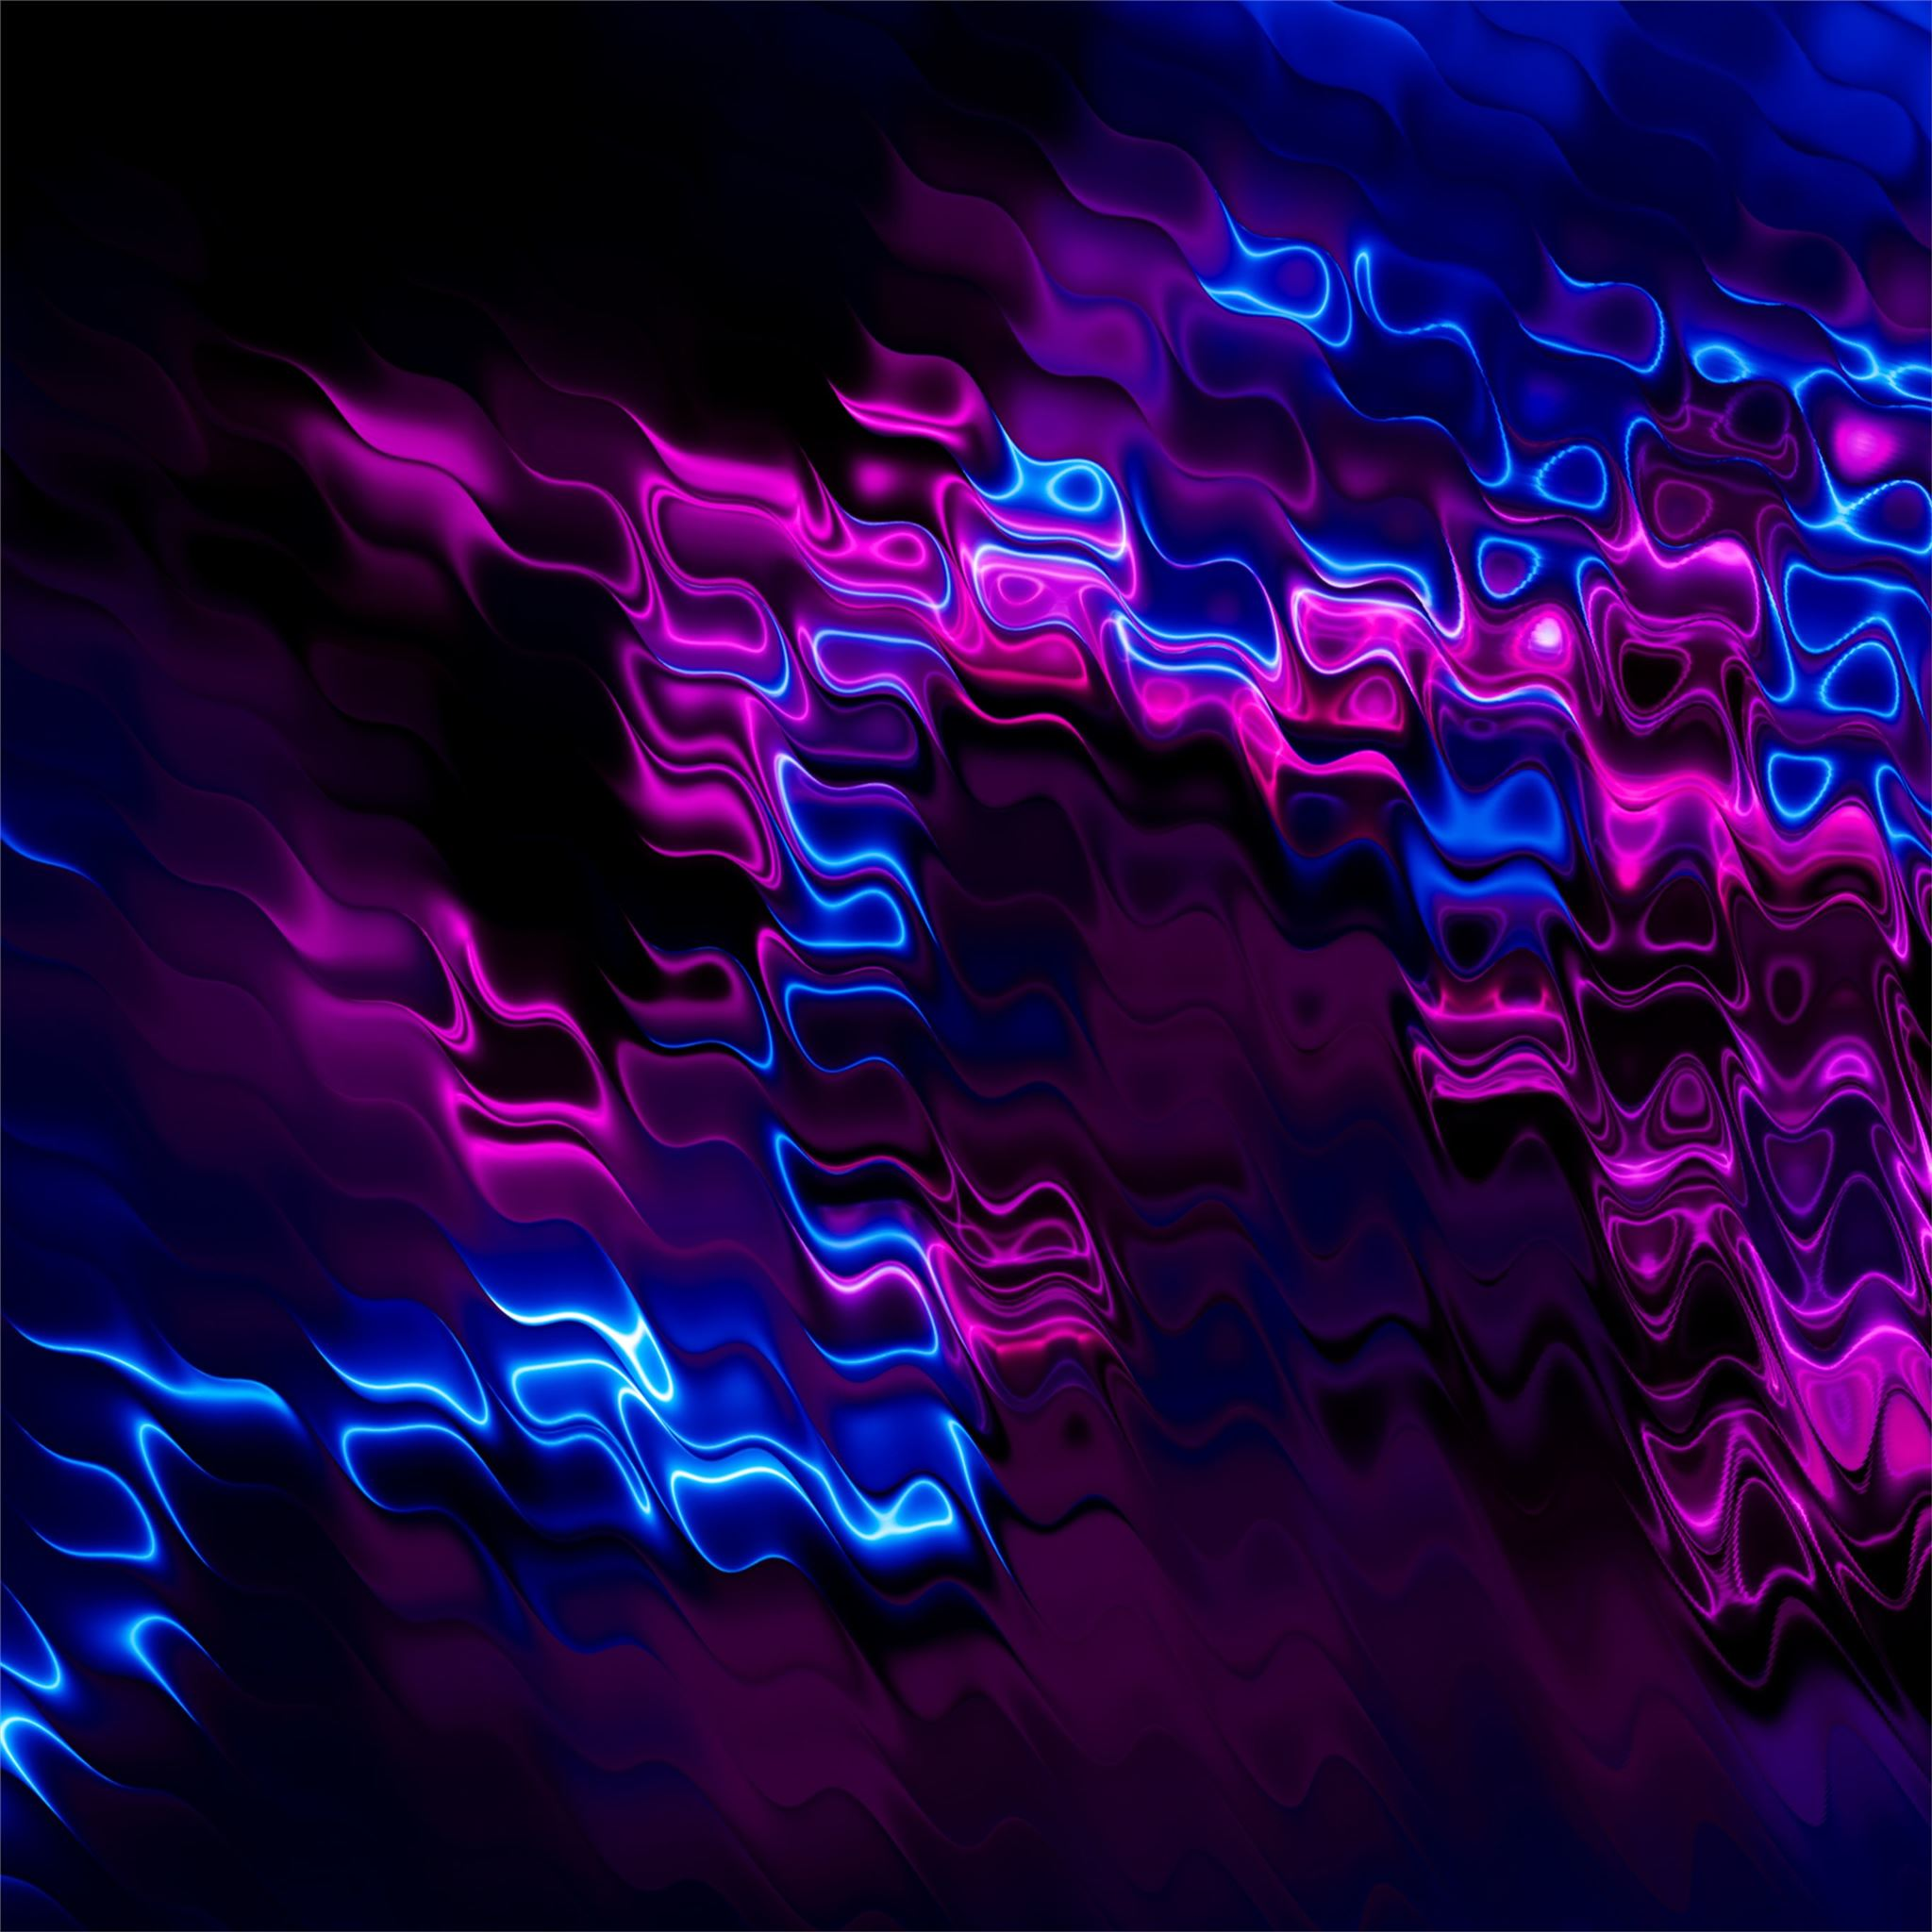 Abstract Purple Blue Cell 4k IPad Air Wallpapers Free Download